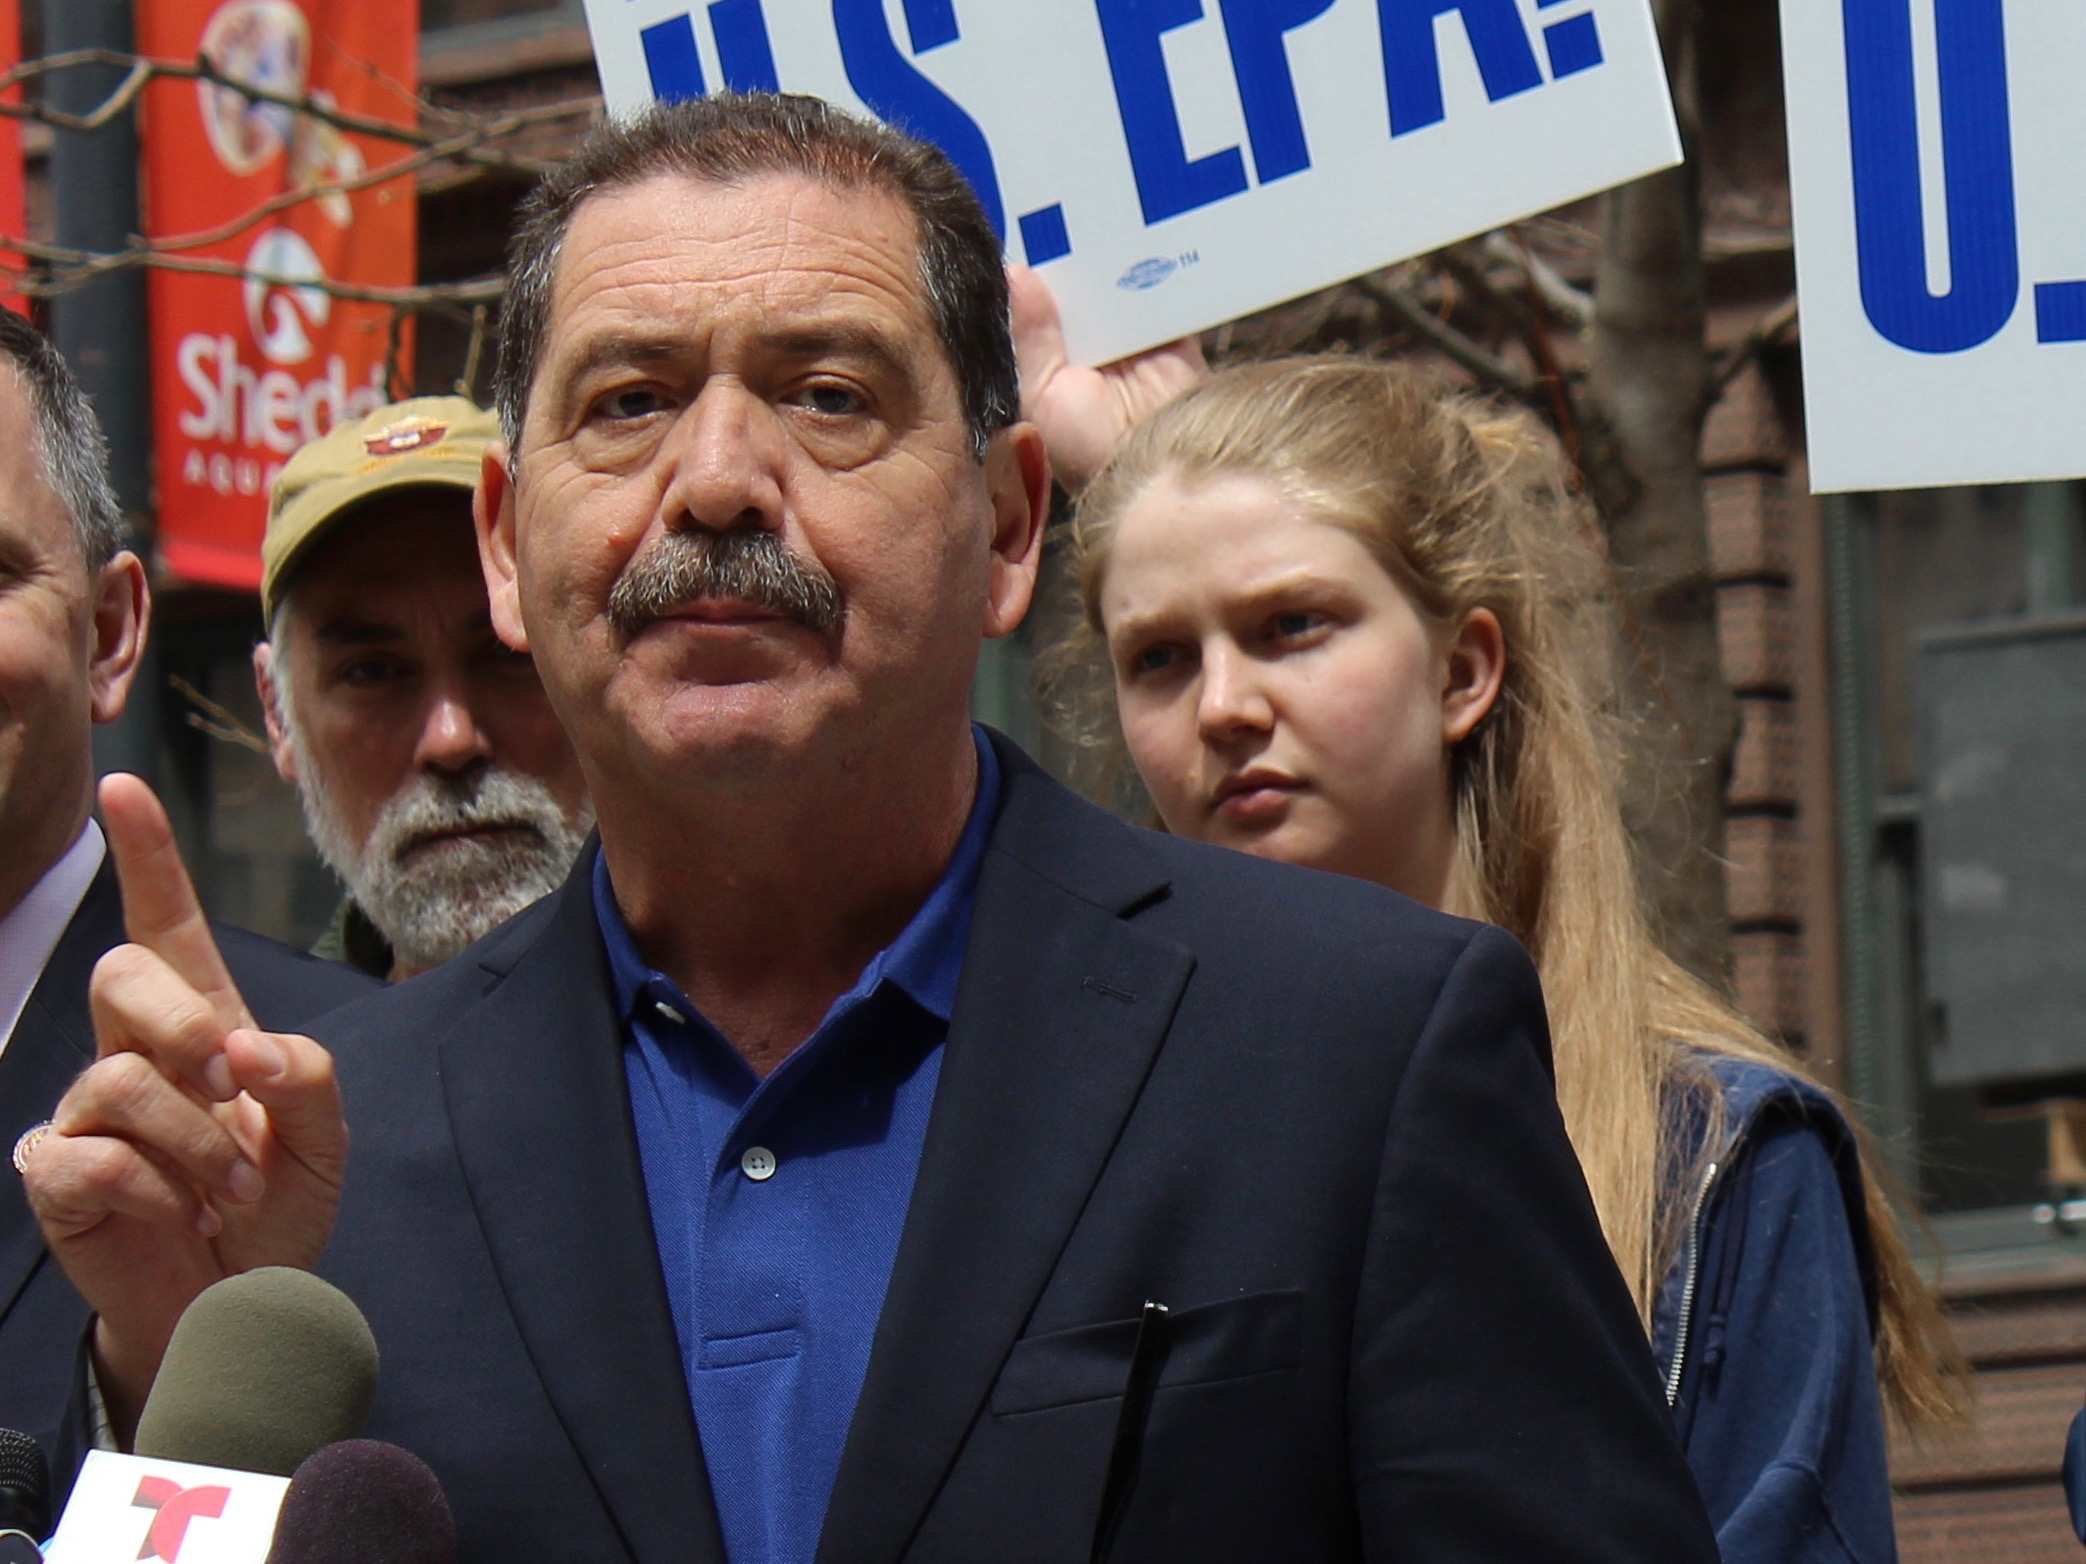 """Congressman Jesus """"Chuy"""" Garcia isn't backing down from his call for an impeachment probe, labeling the conduct of President Trump """"rather treasonous."""" (One Illinois/Ted Cox)"""